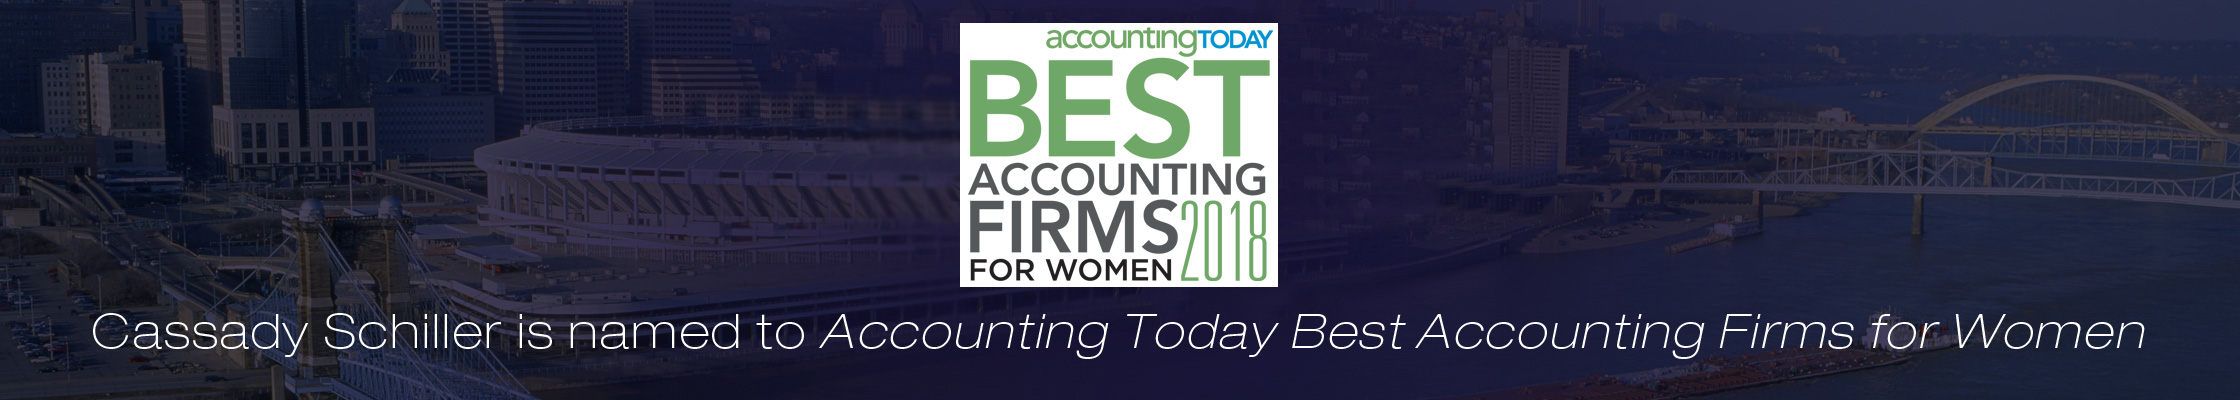 accounting-today-best-accounting-firms-for-women